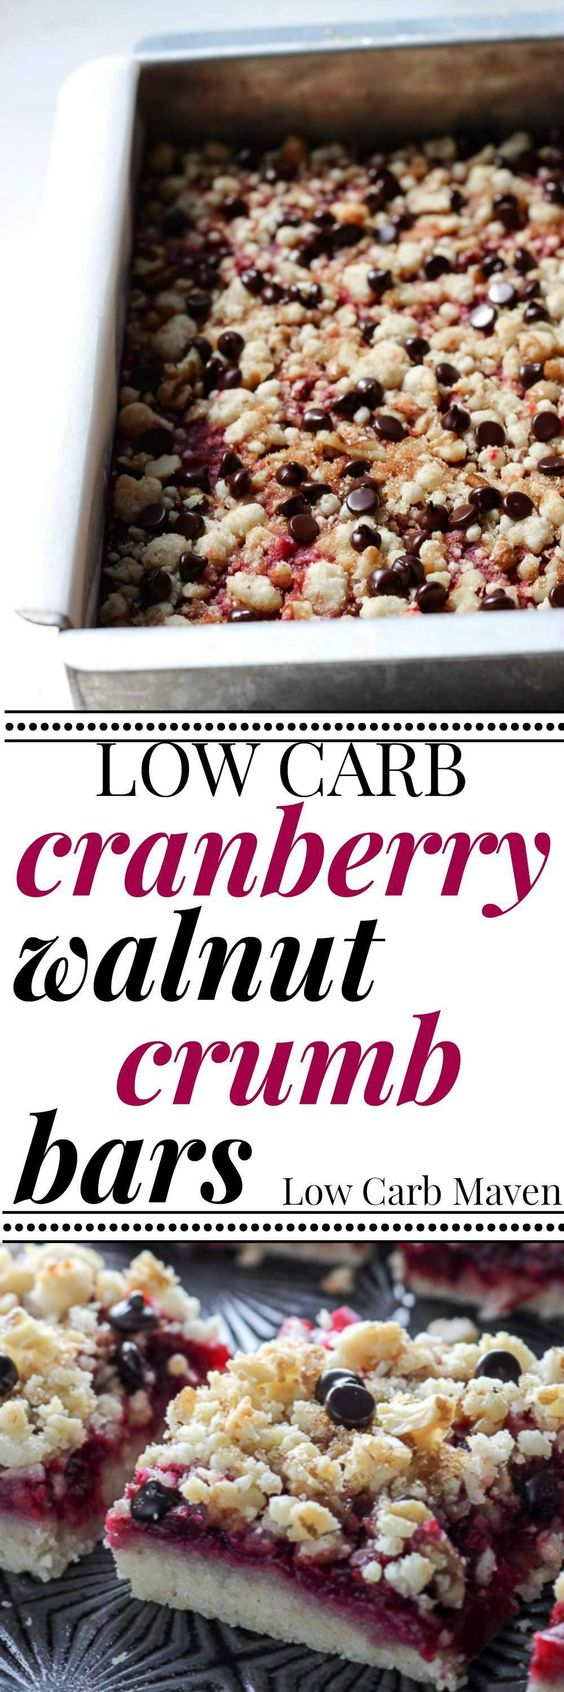 Low Carb Cranberry Walnut Crumb Bars are Sugar free